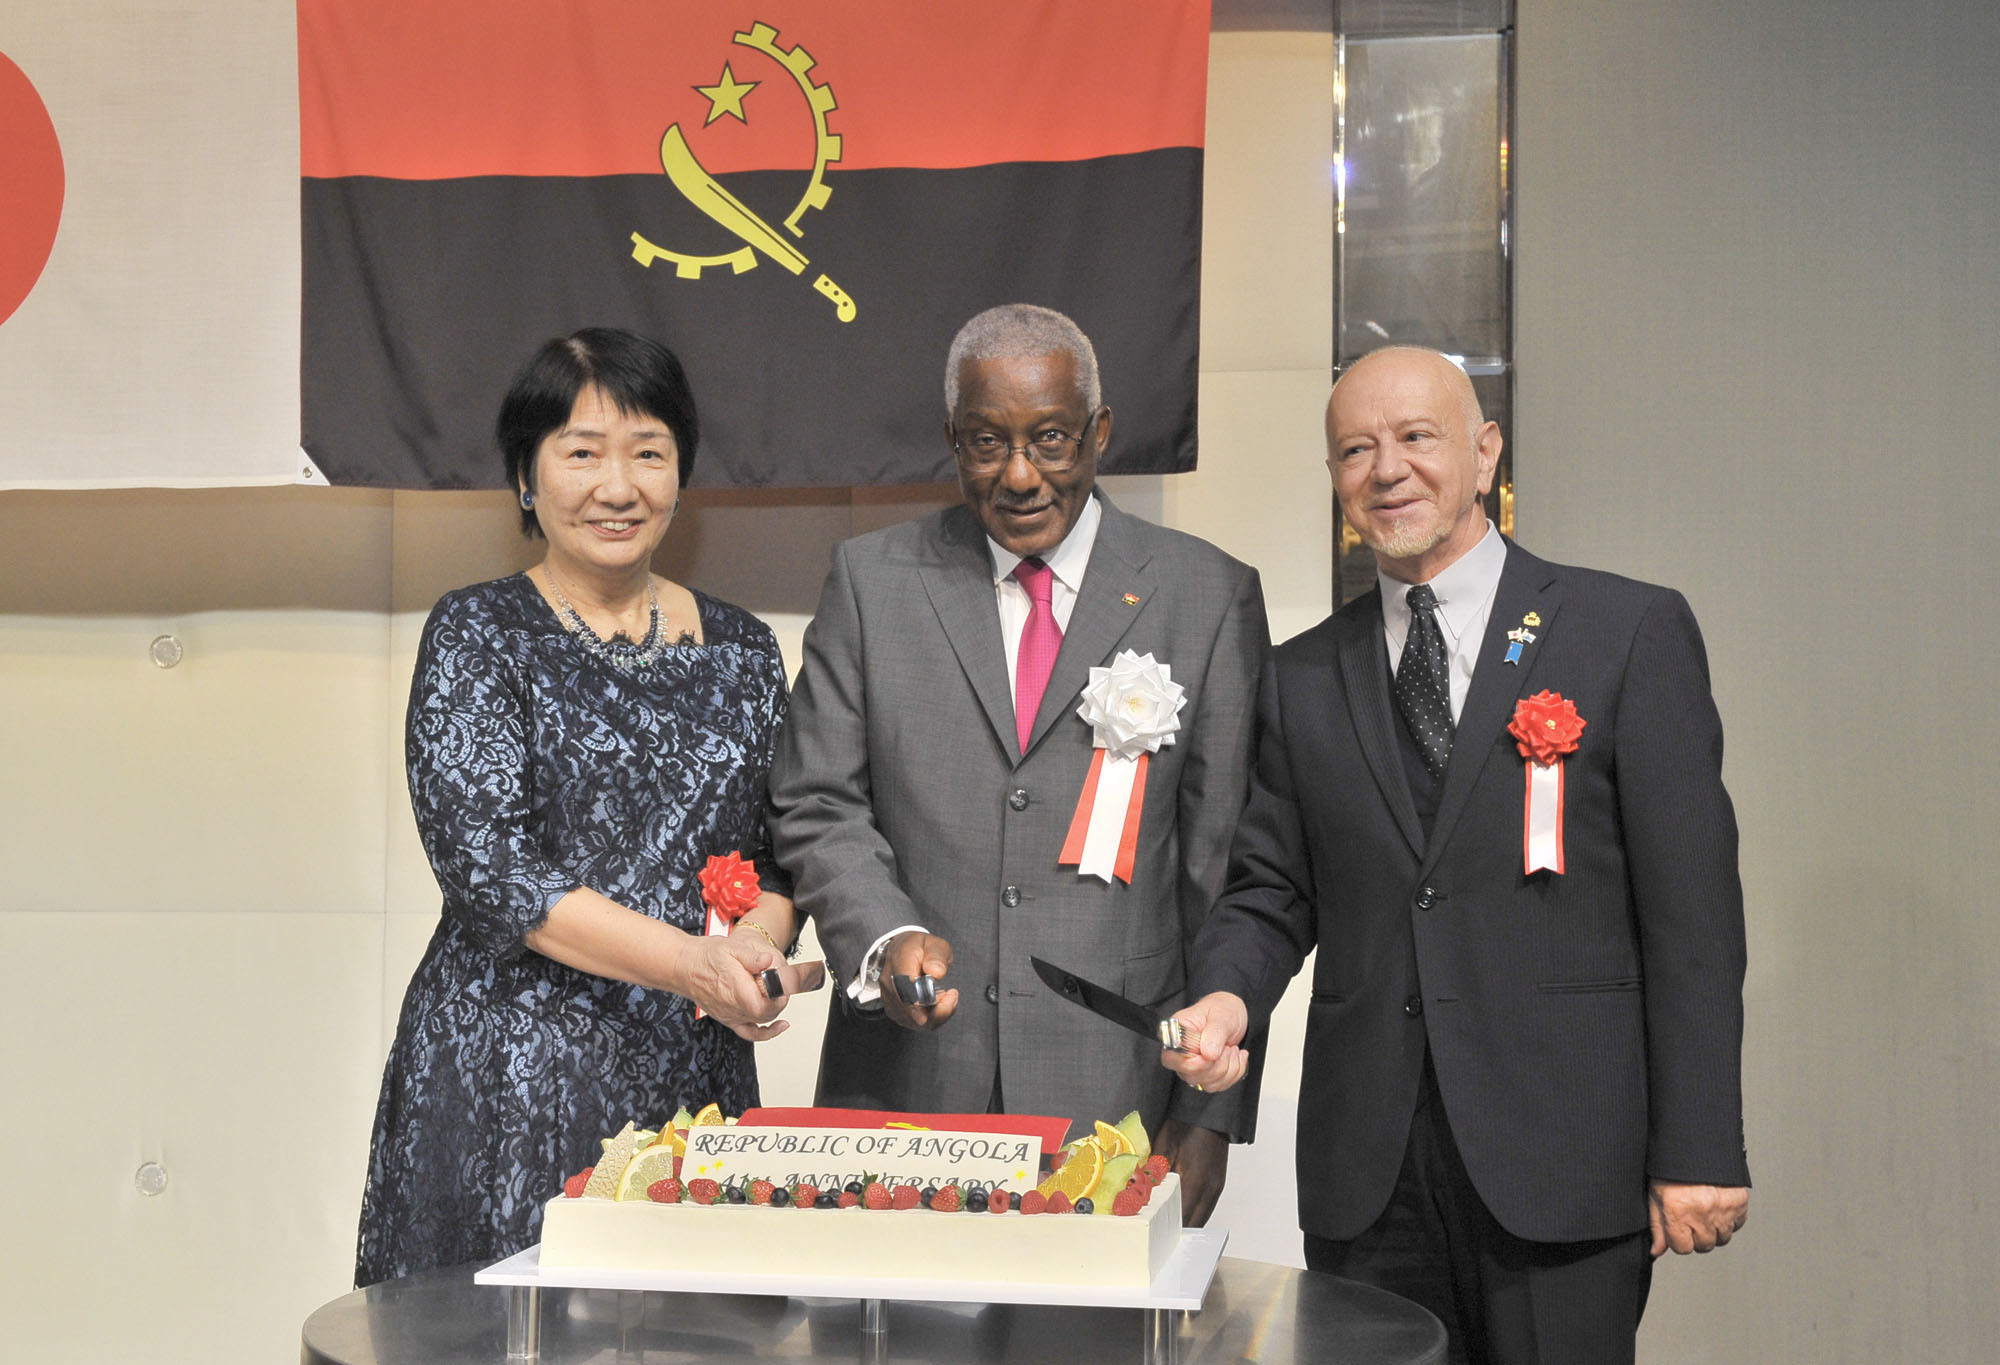 Angolan Ambassador Joao Miguel Vahekeni (center) prepares for a ceremonial cake cutting with Yumiko Akiyama (left), lead researcher of the Japan Institute of Community Social Work, and Manlio Cadelo, San Marino's ambassador and dean of the Diplomatic Corps, during a reception to celebrate of the 41st anniversary of the independence of the Republic of Angola at the Palace Hotel Tokyo on Nov. 11. |  YOSHIAKI MIURA